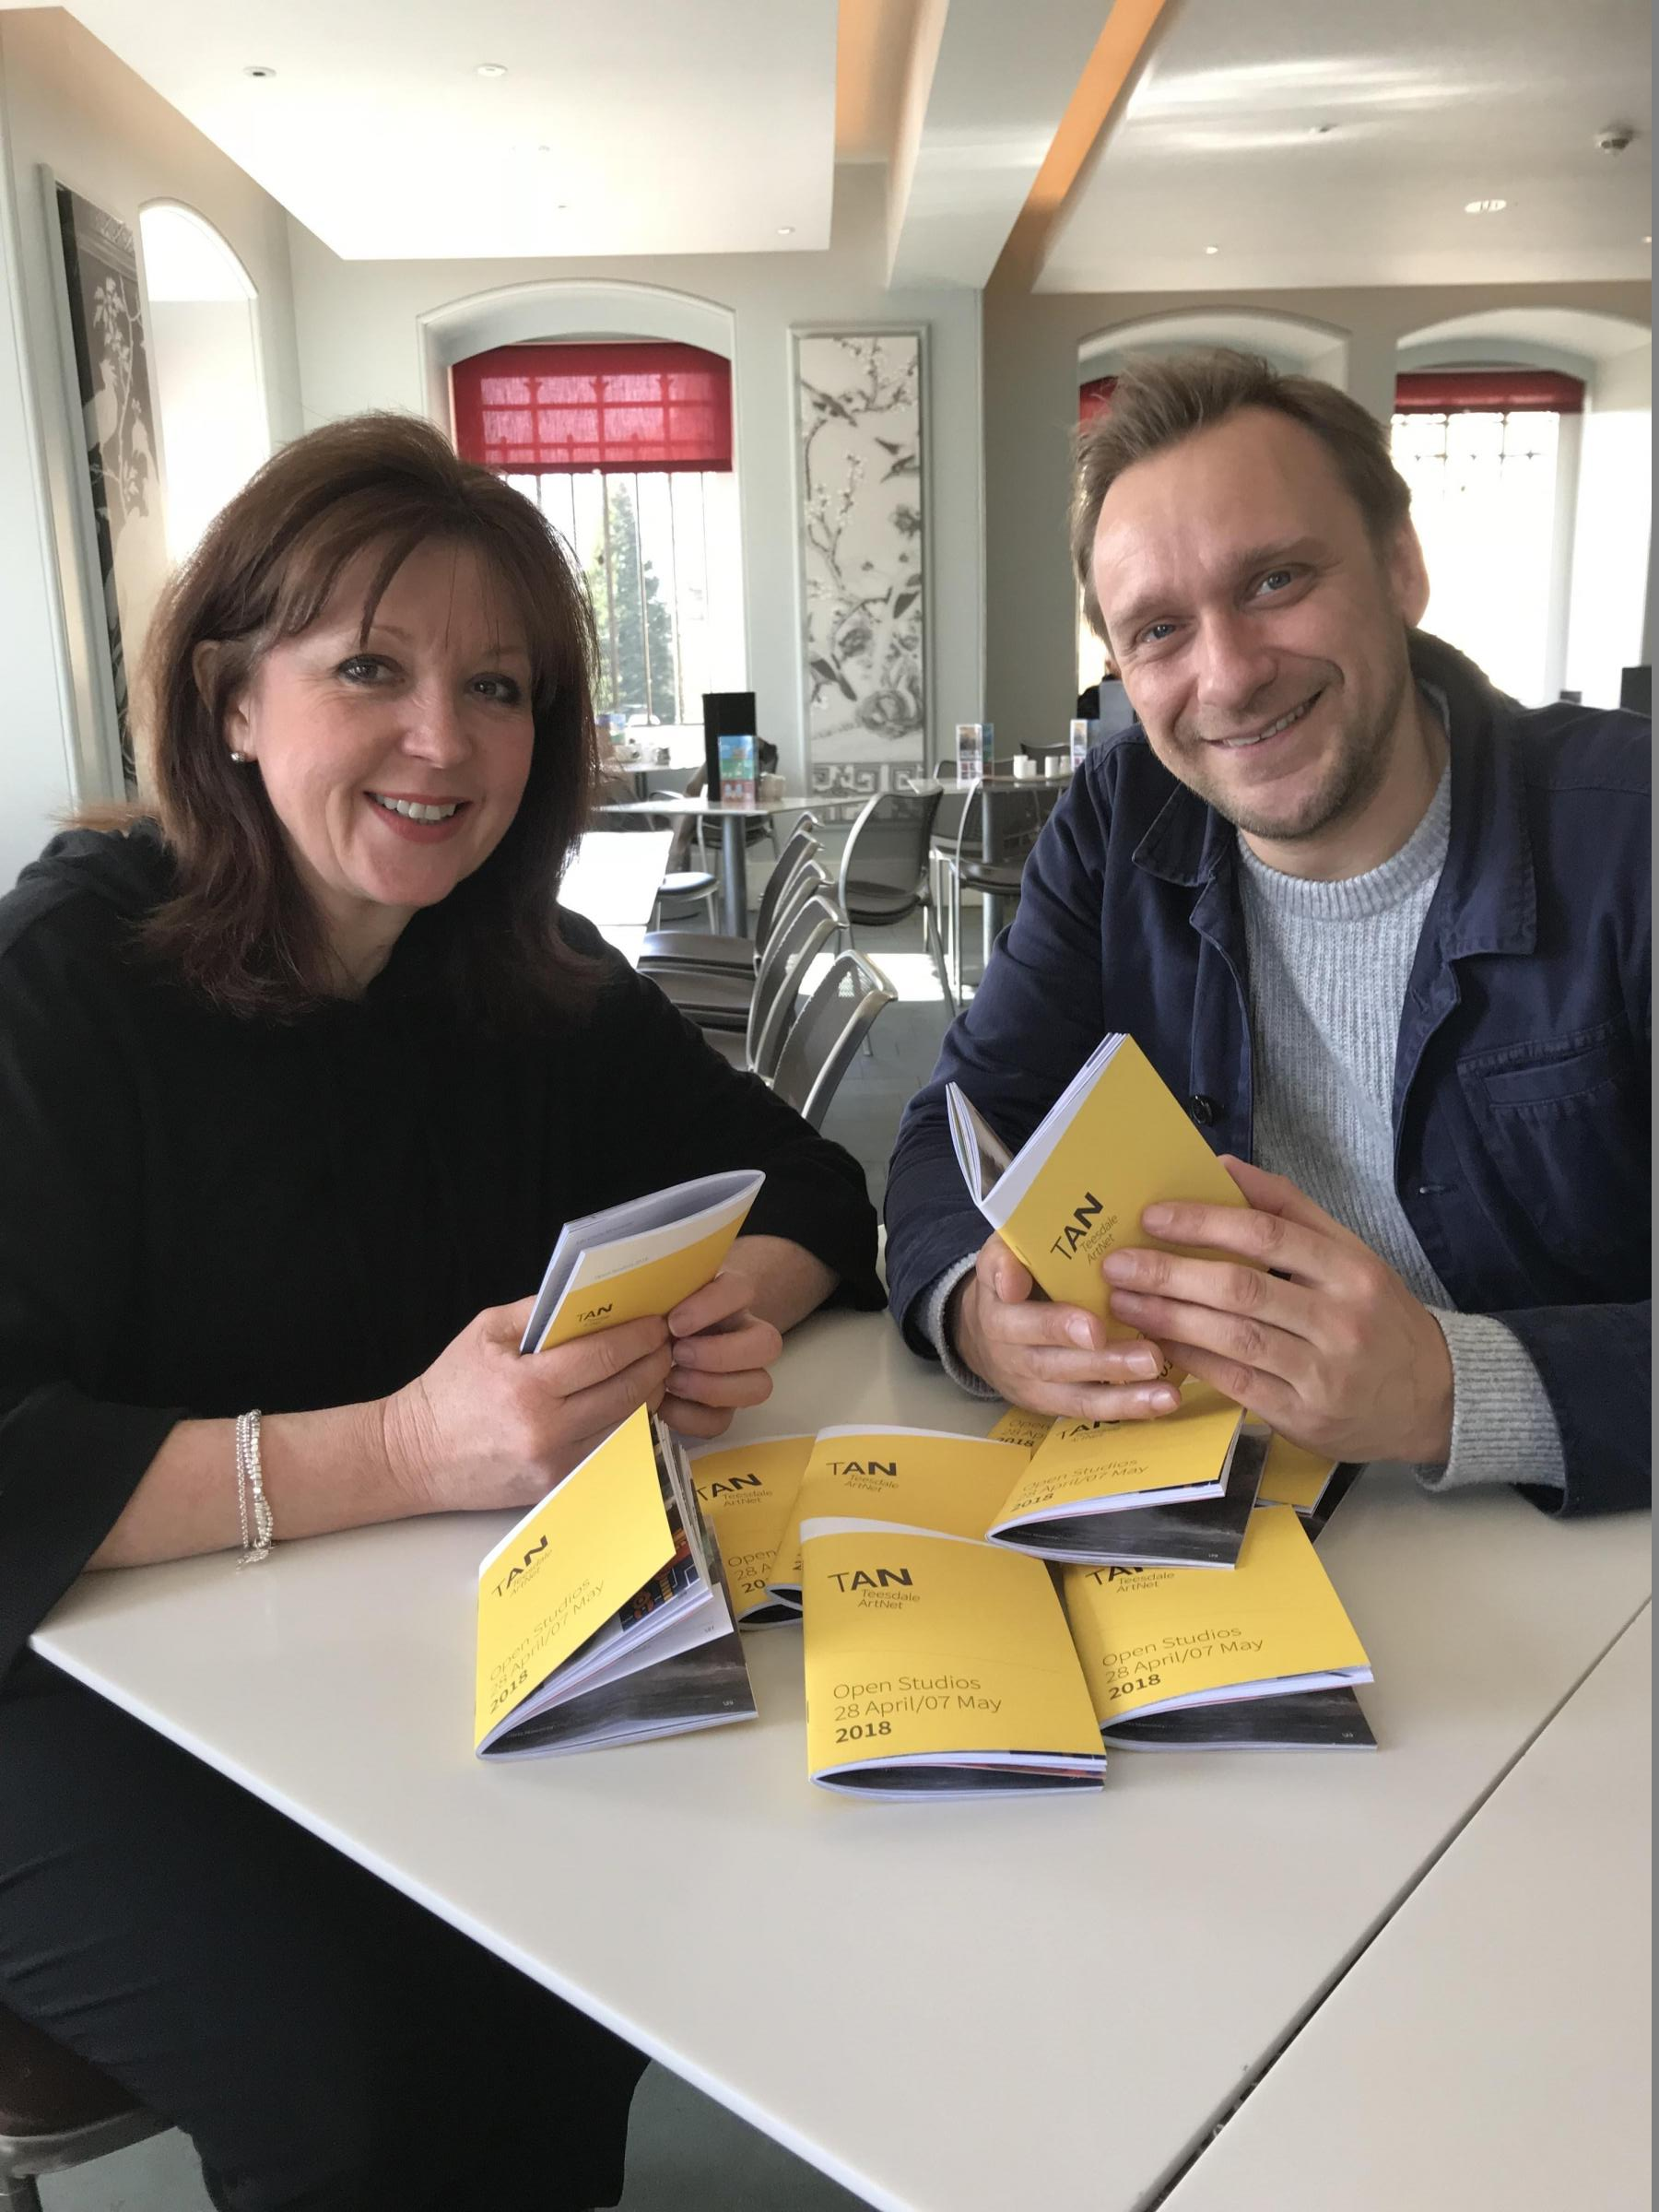 ARTISTS: Jane Young and Ryan Plews with the new brochures